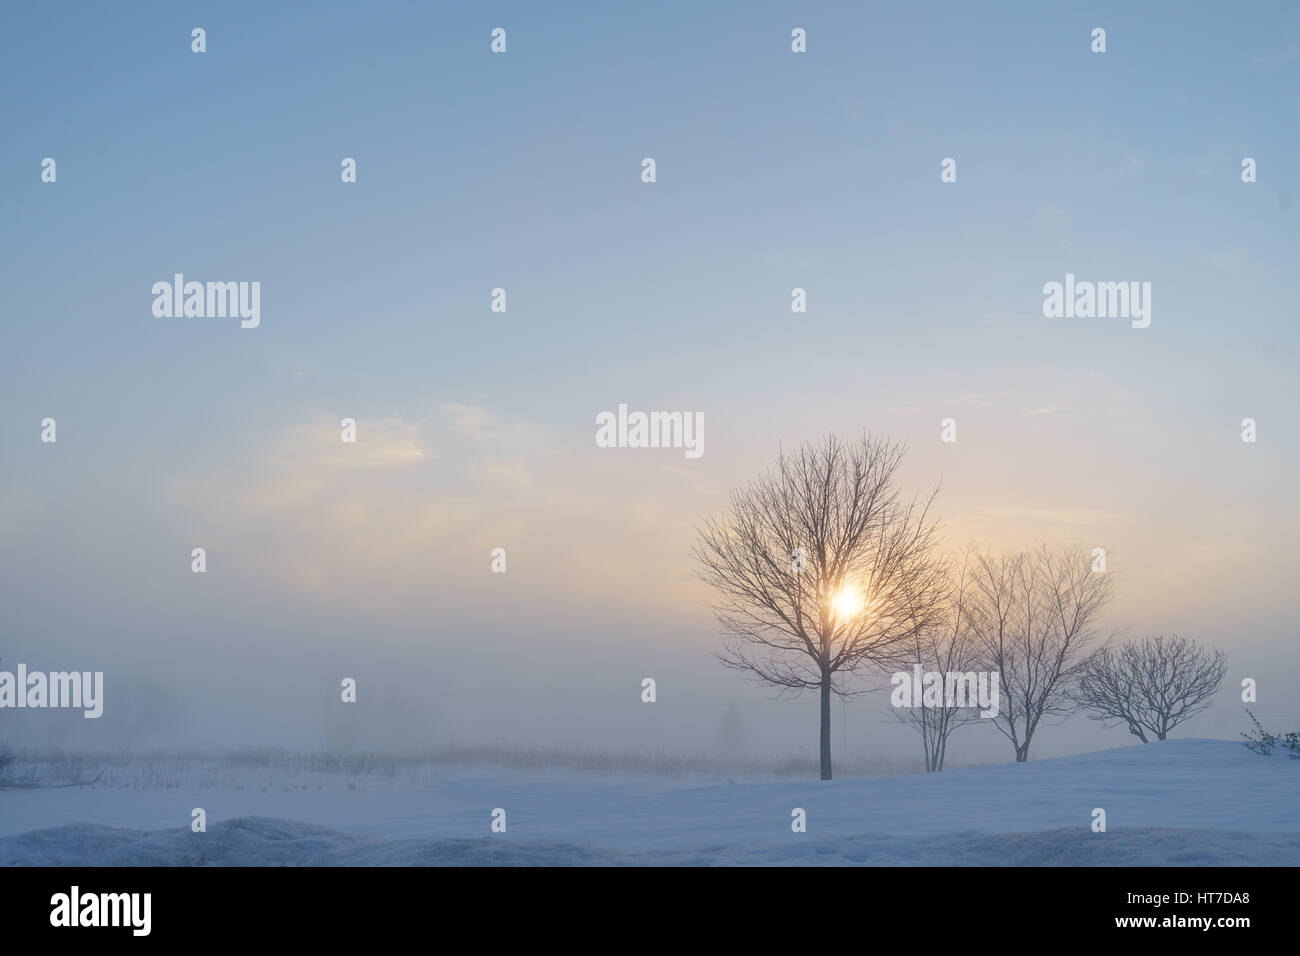 Sun shining through the mist in a winter landscape. - Stock Image